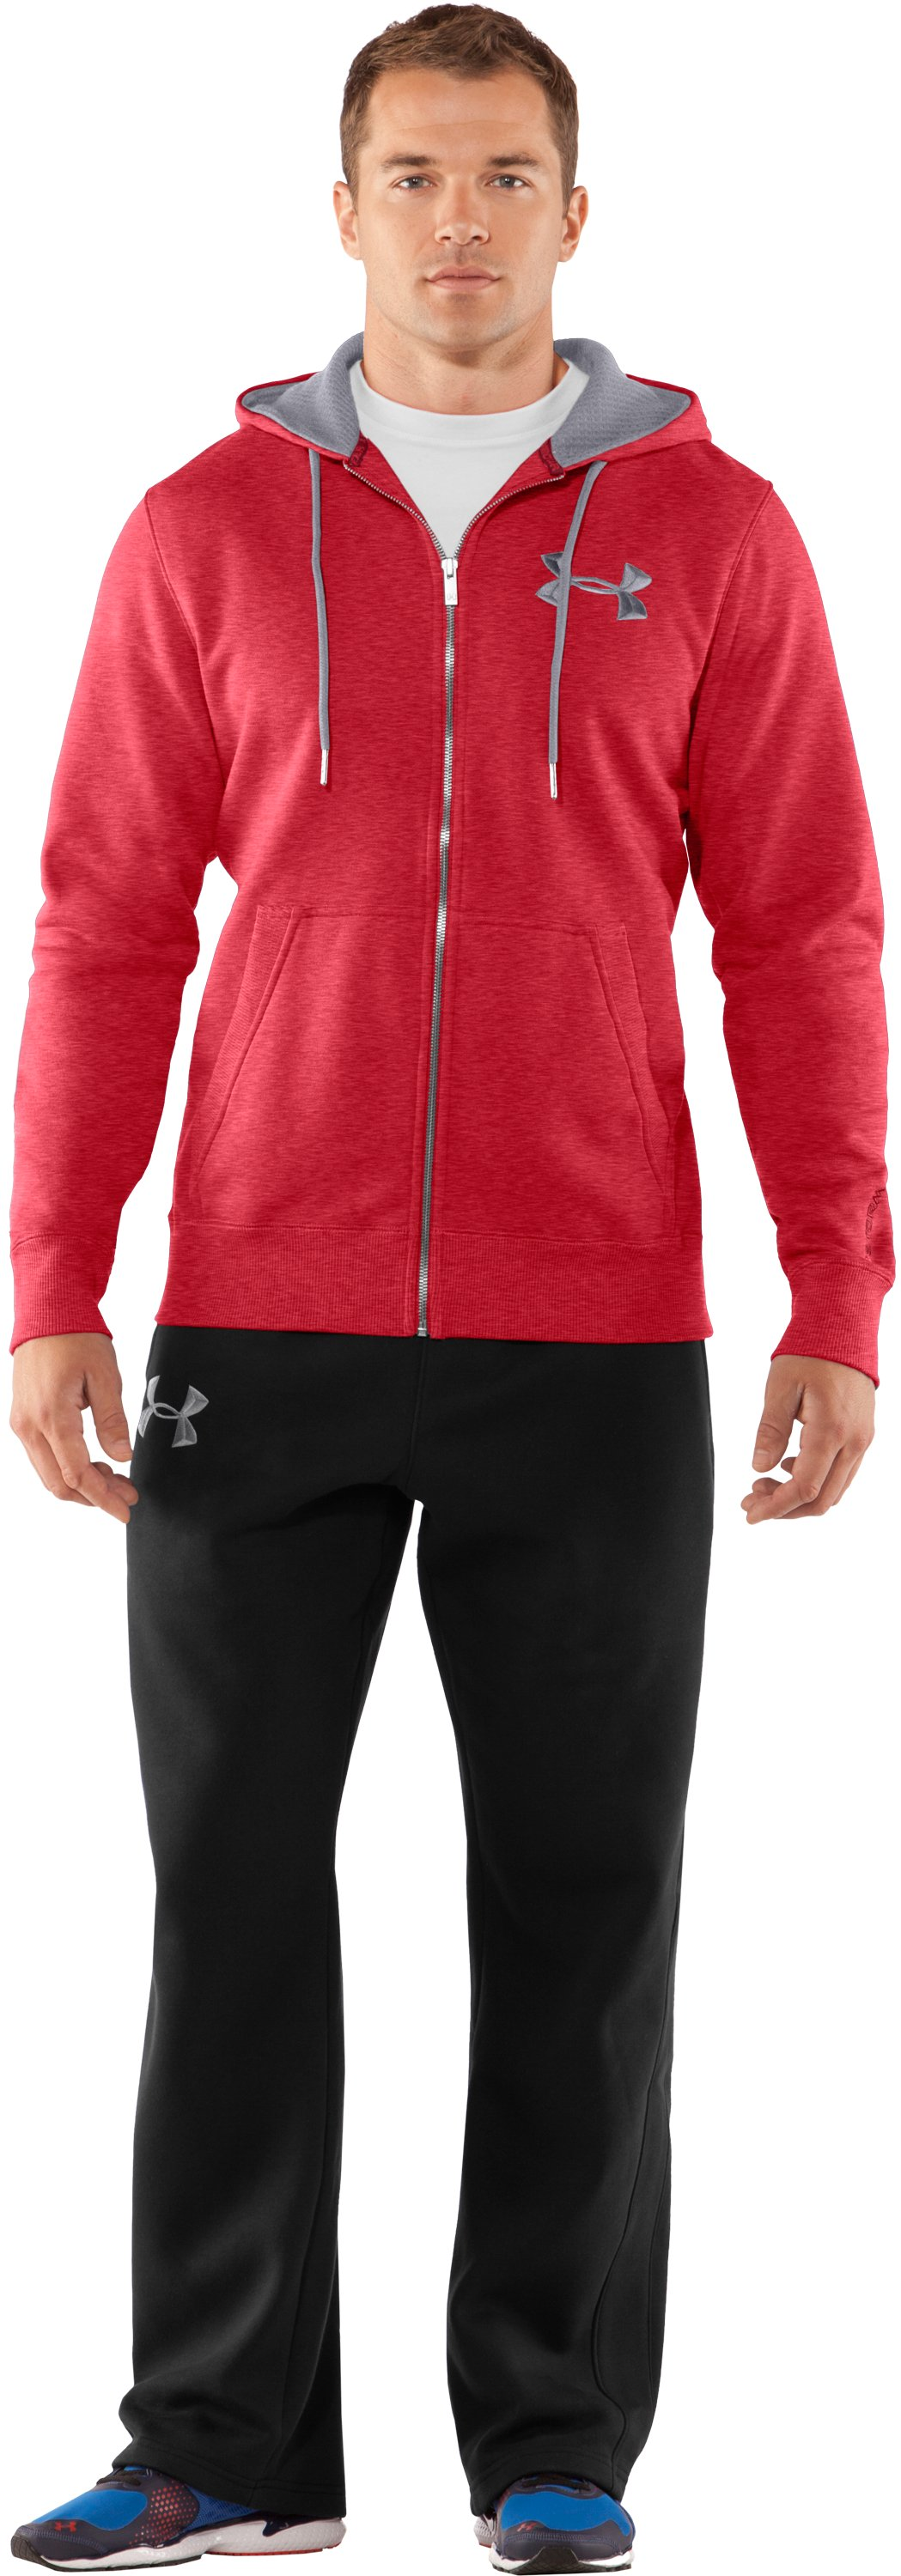 Men's Charged Cotton® Storm Full Zip Hoodie, Red, Front